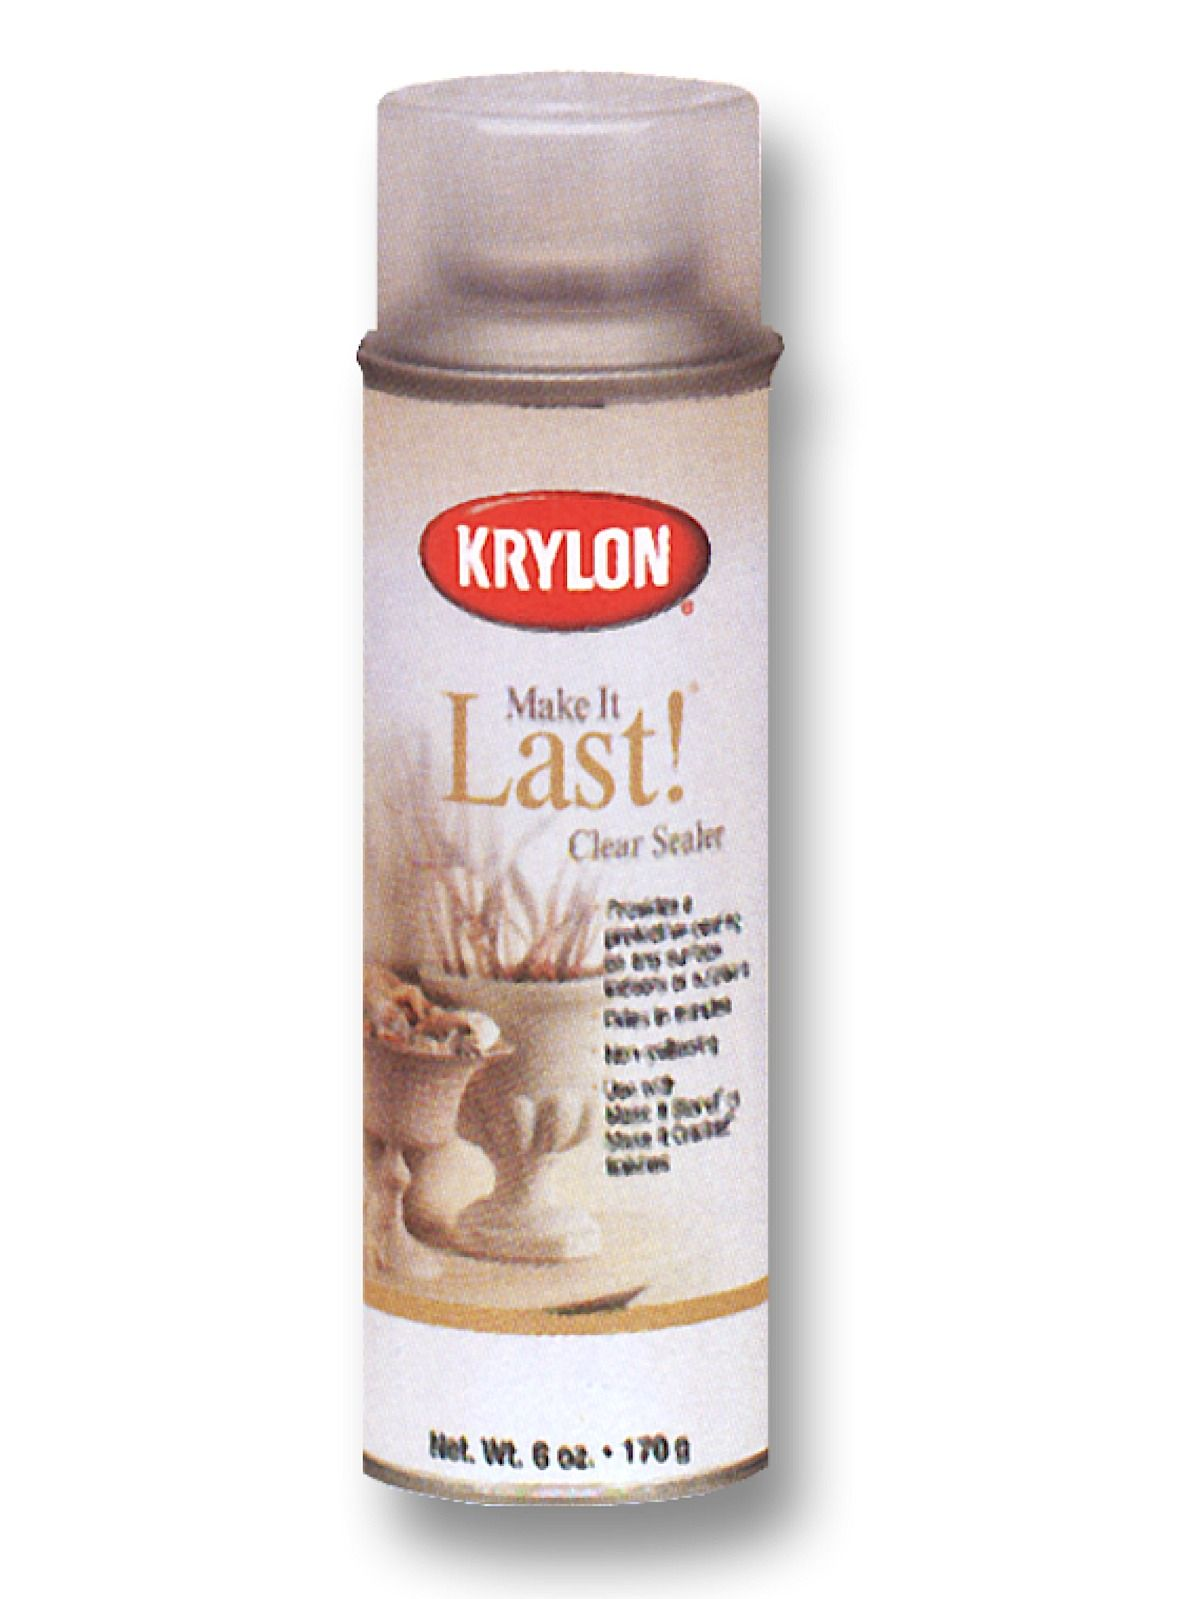 Krylon Make It Last Clear Coat Sealant Spray Protects And Seals Surfaces Painted With Faux Finishes And Adds Outdoor Durabili Stone Spray Paint Sealer Krylon